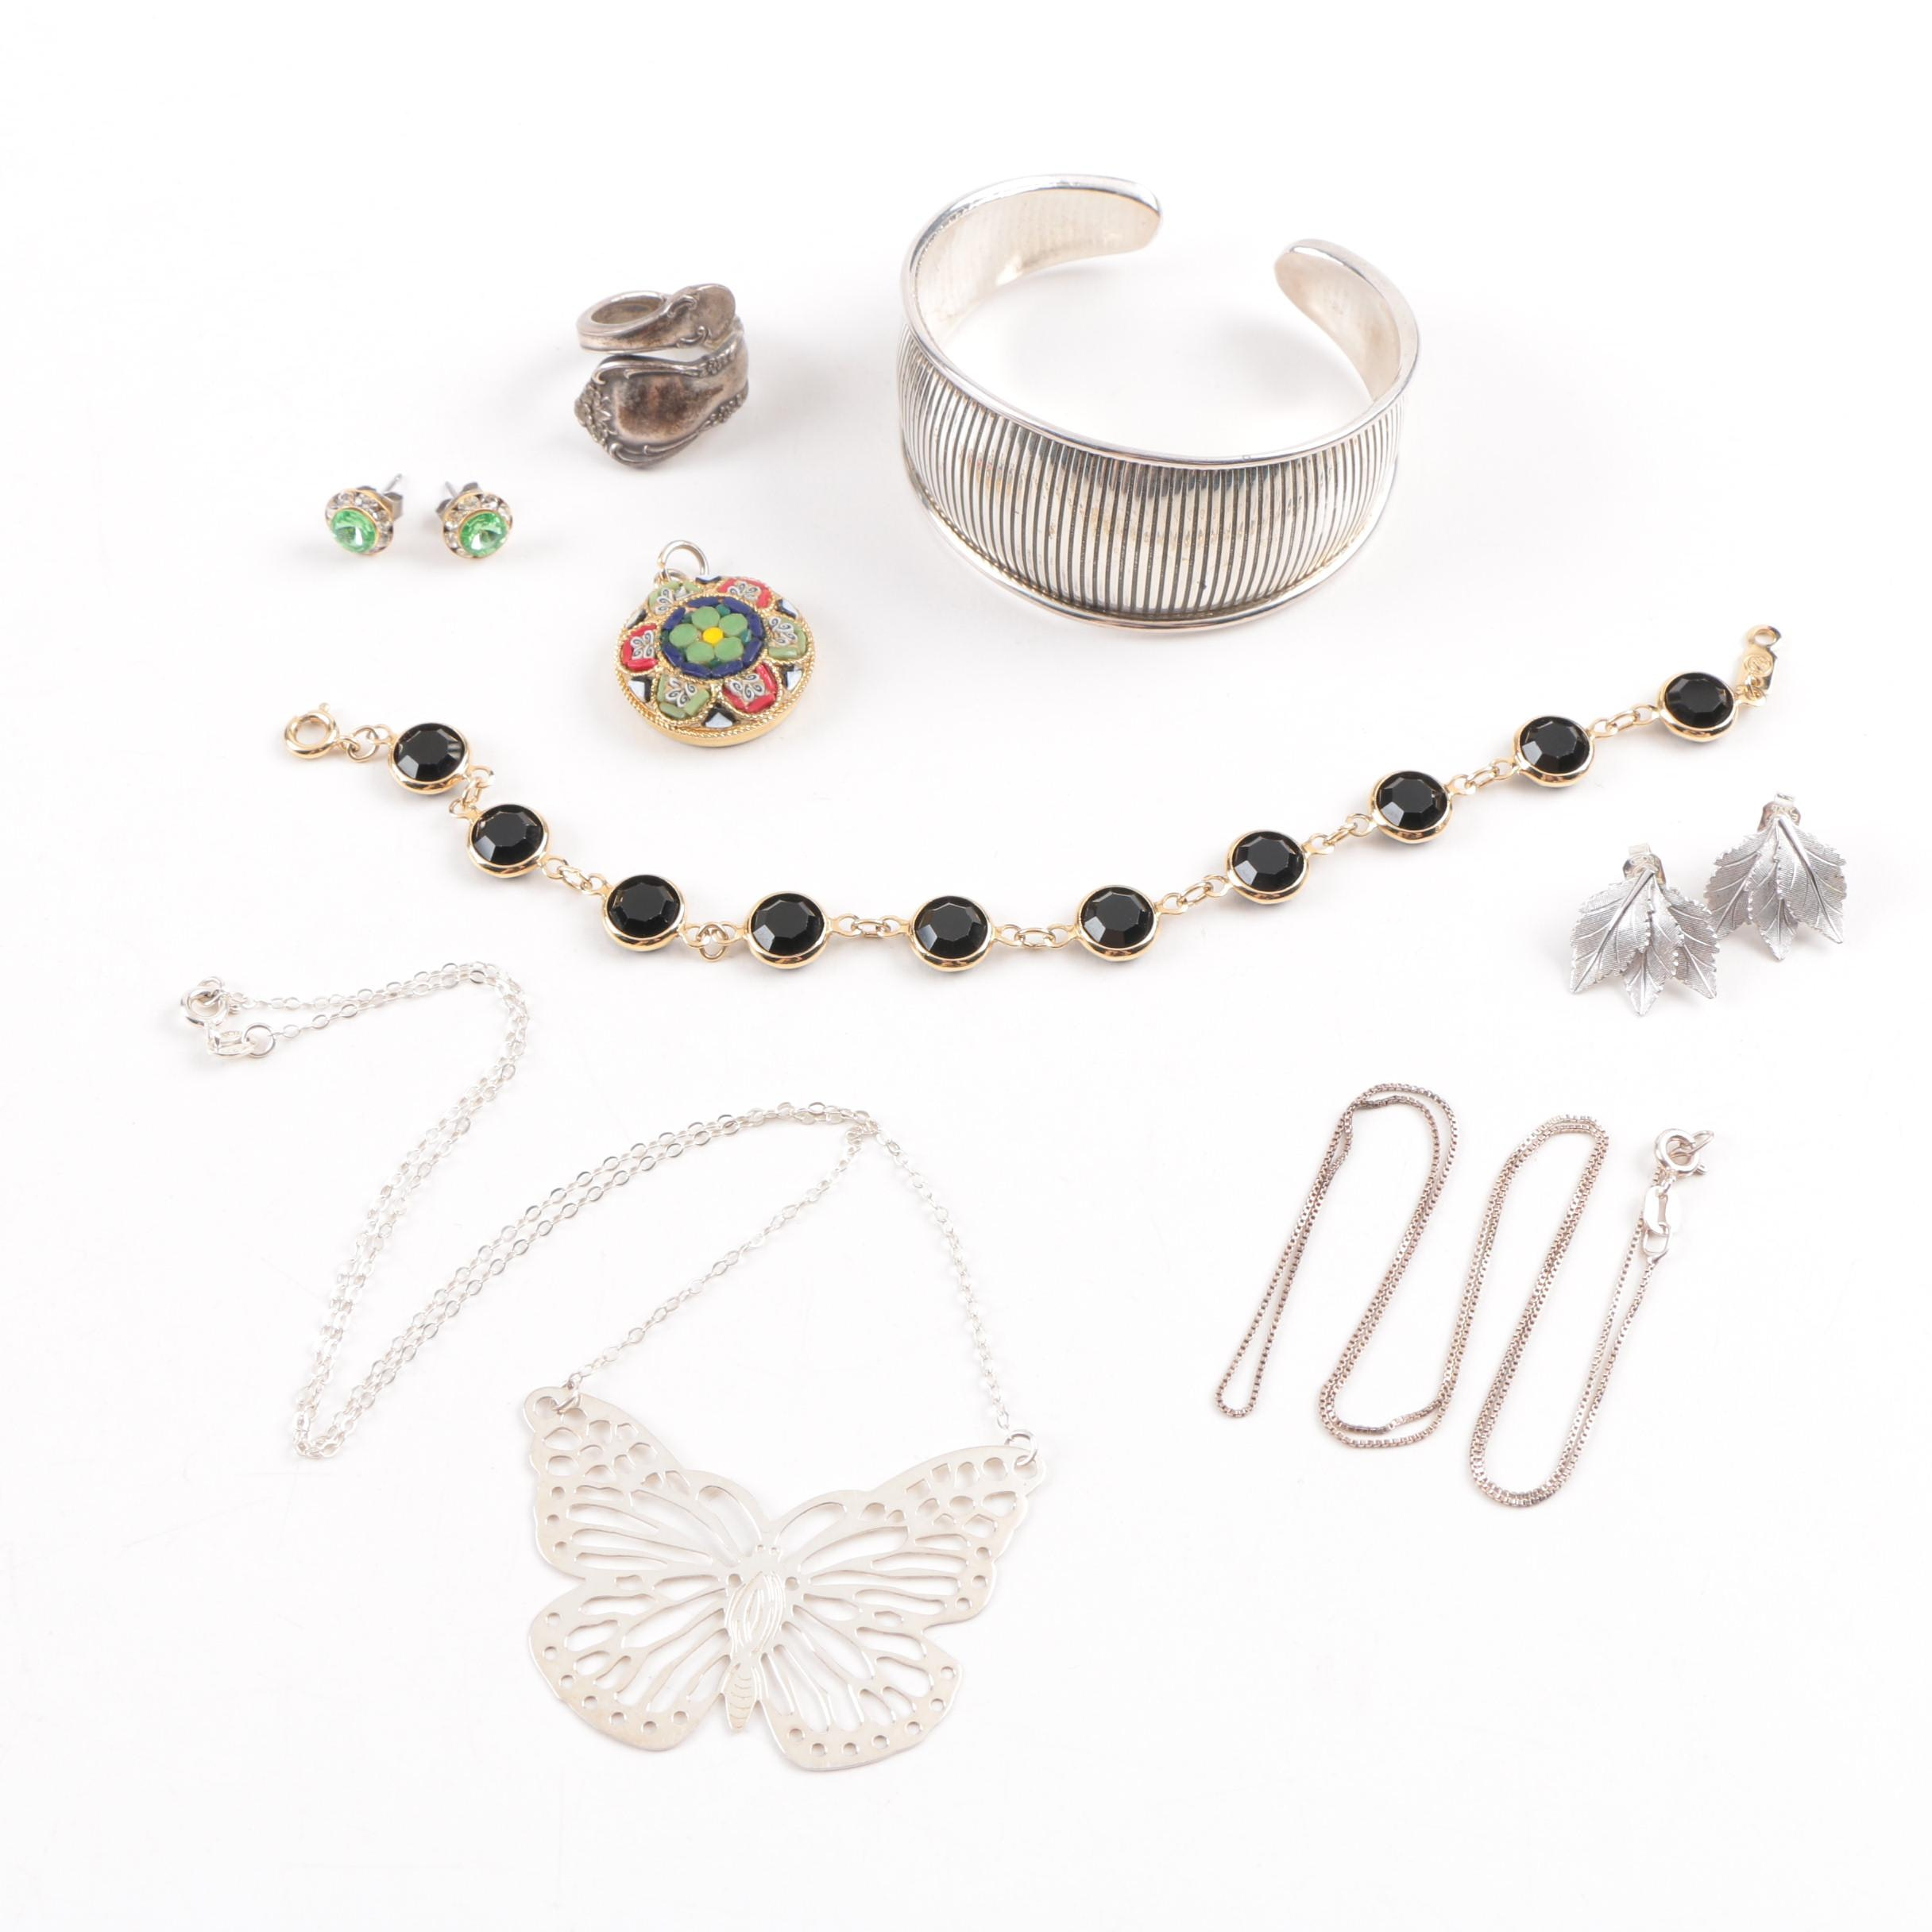 Assorted Costume Jewelry Including Sterling Silver